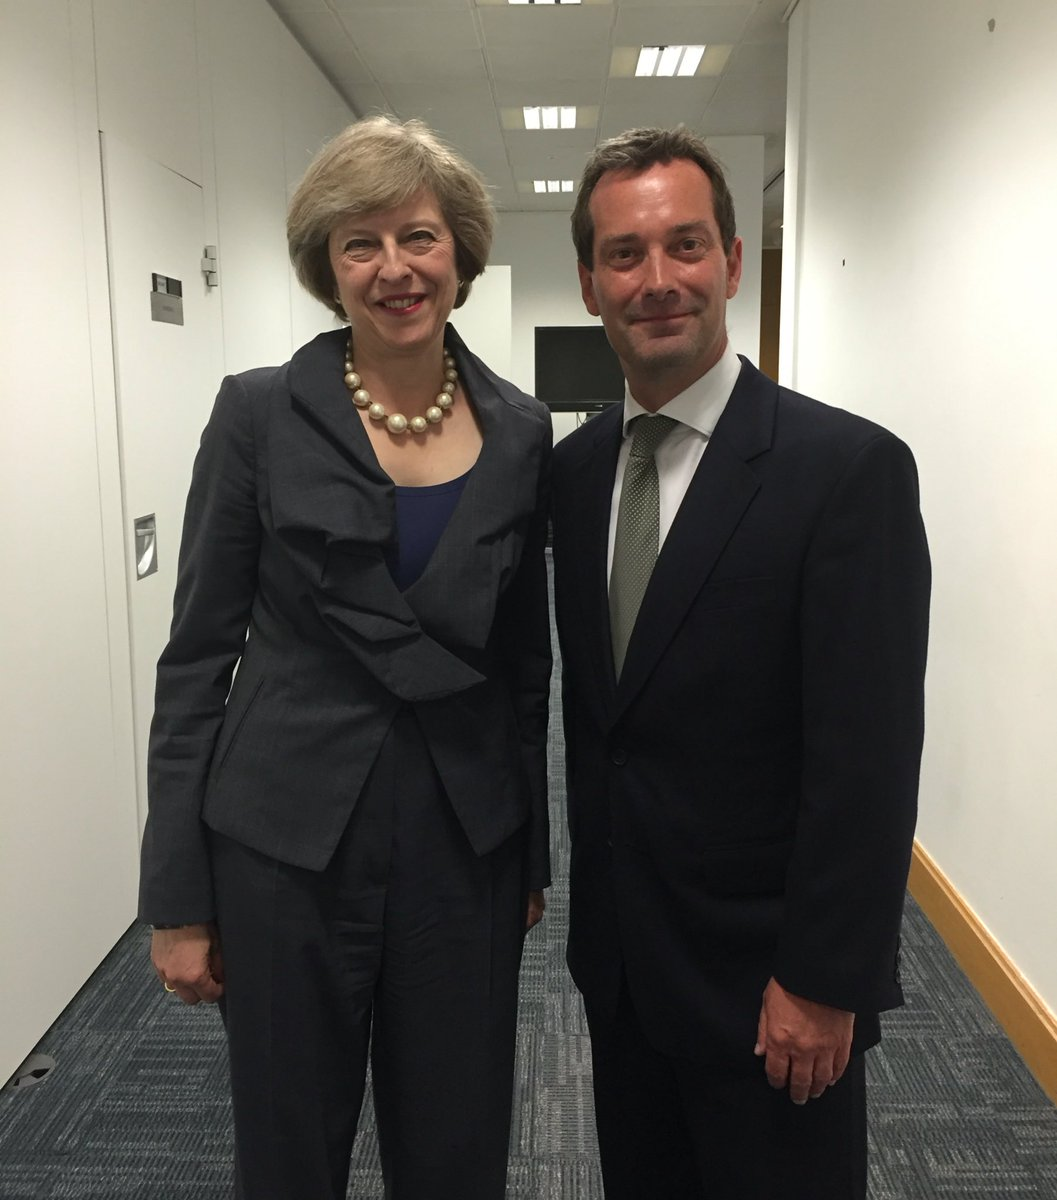 Rob Semple and Theresa May